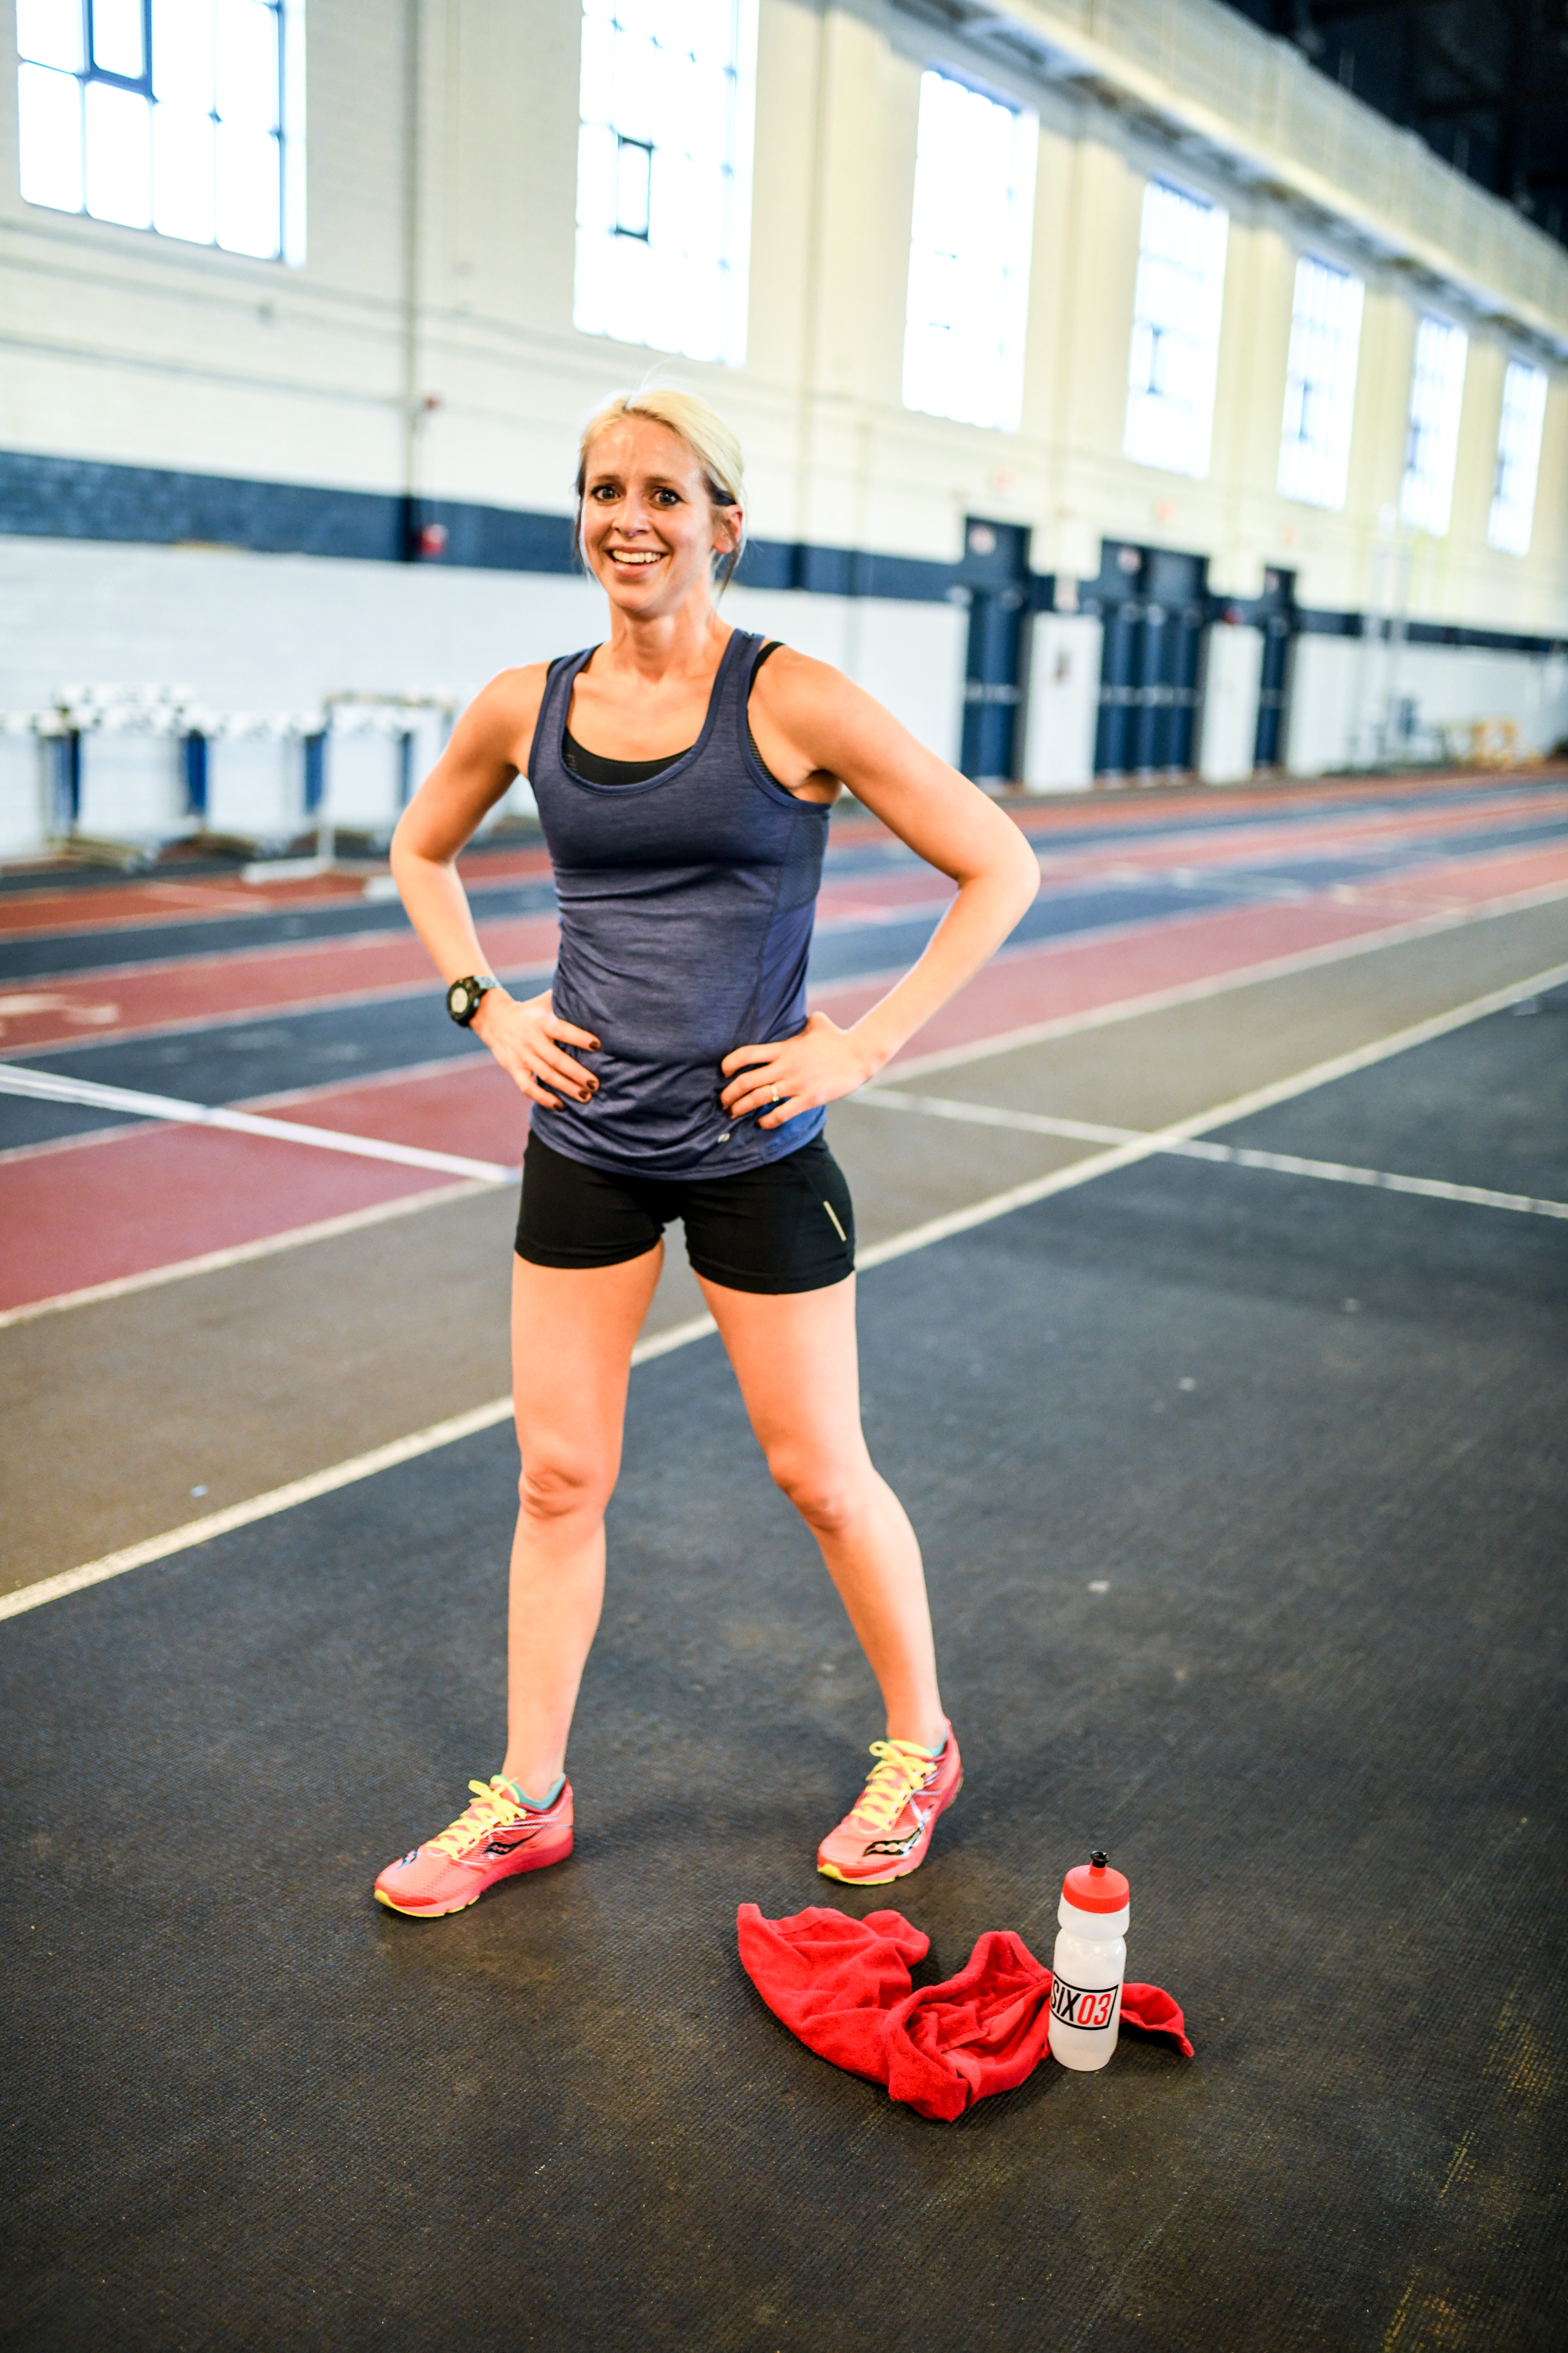 3 reasons why your running isn't improving